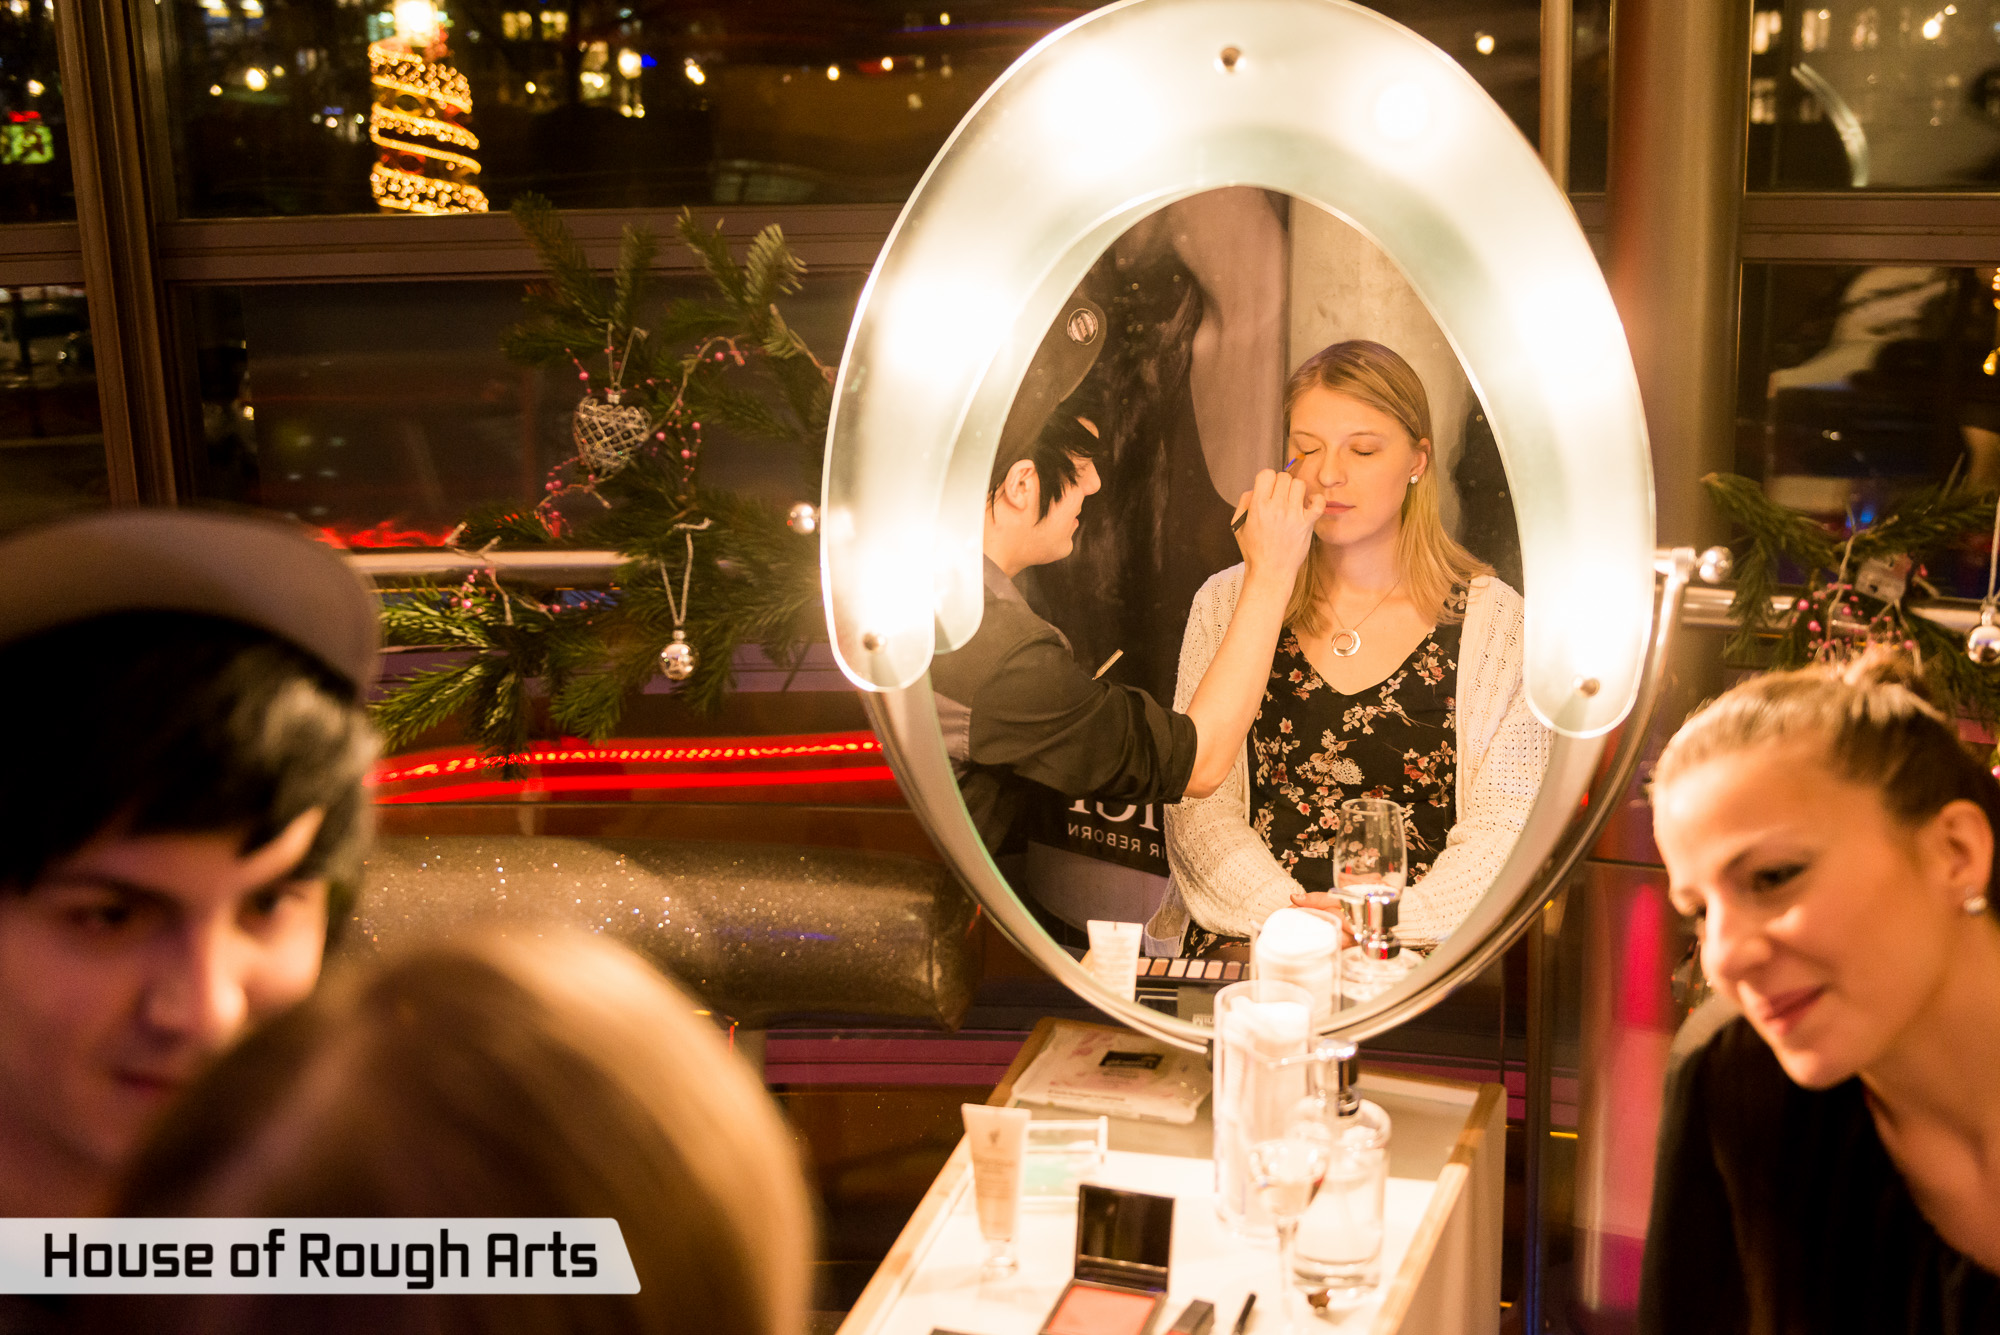 Styling und Make-up in der Dry Lounge am Potsdamer Platz